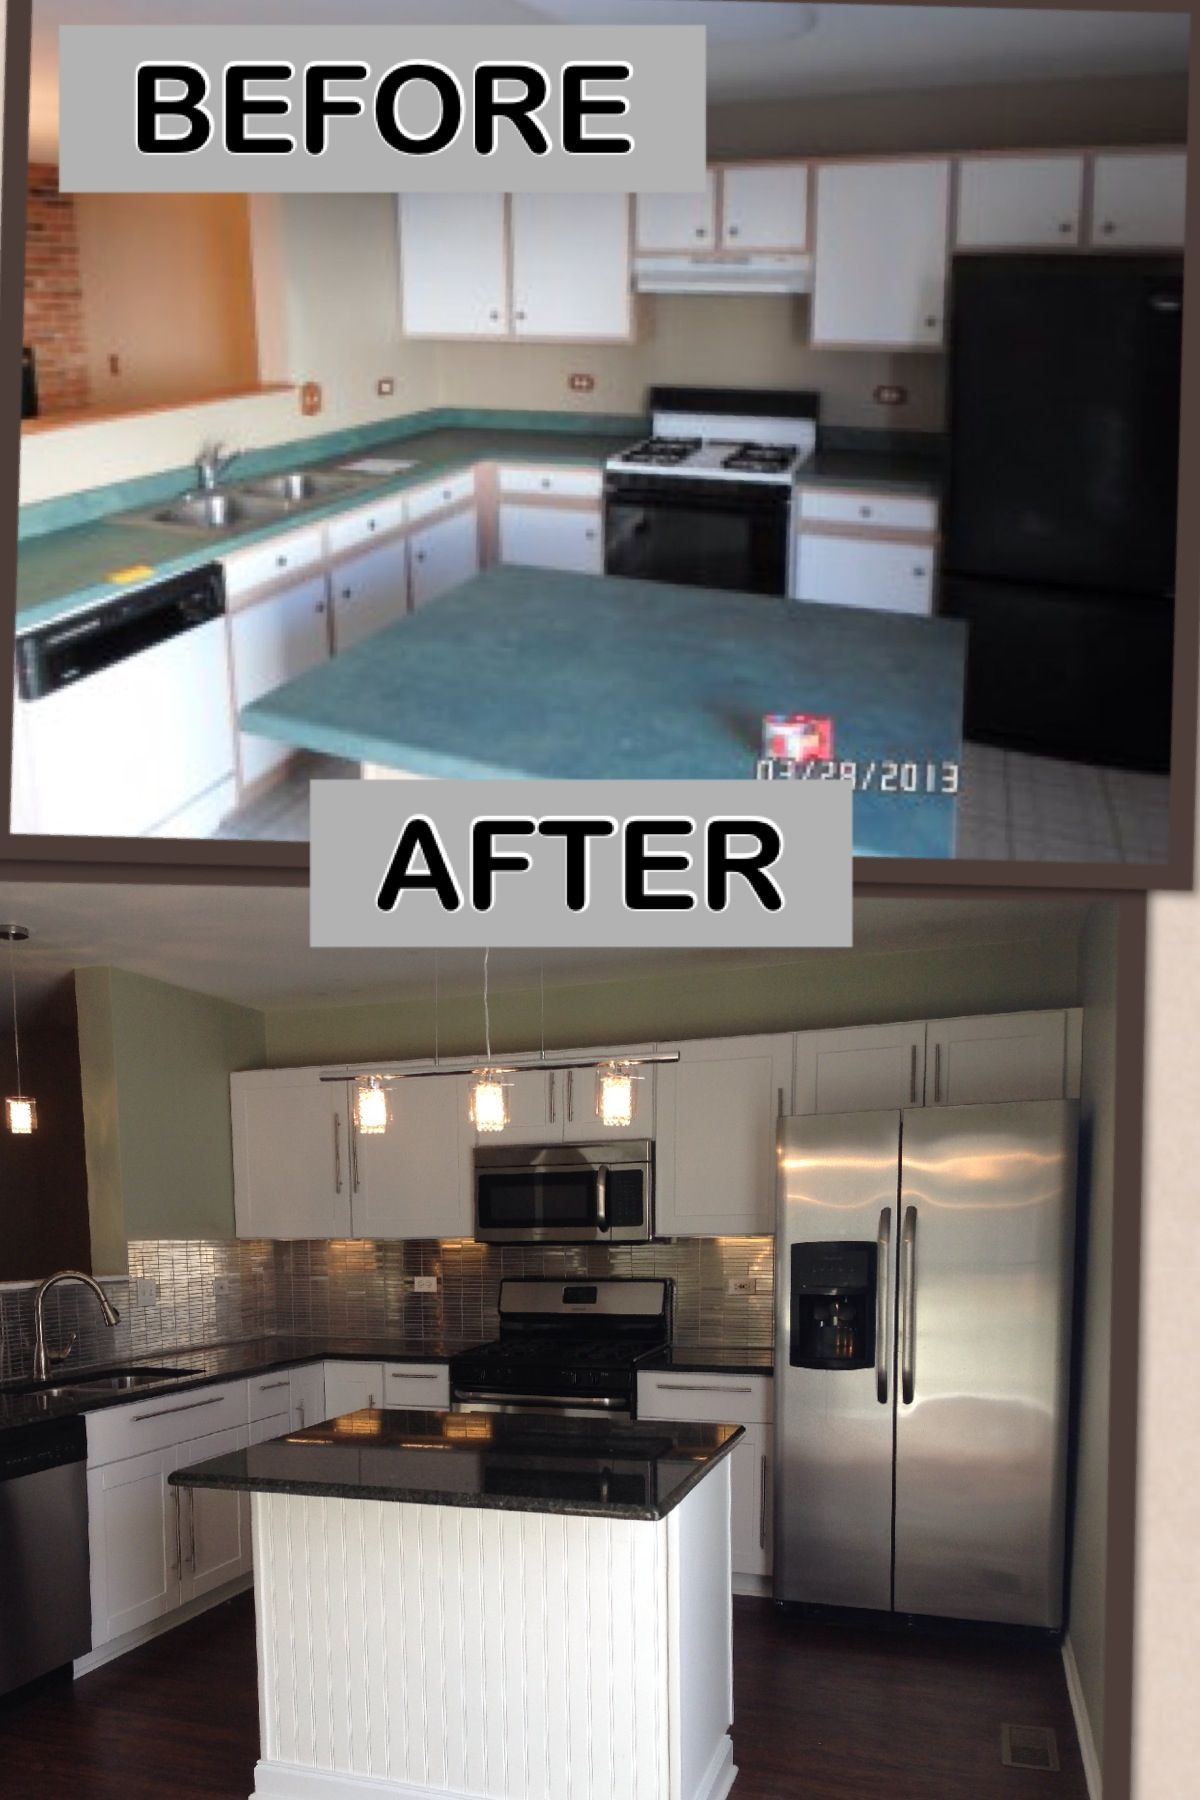 Kitchen Remodel On A Budget Everything Brand New For 7 000 Cabinets Were From Home De Cheap Kitchen Remodel Kitchen Remodel Small Simple Kitchen Remodel